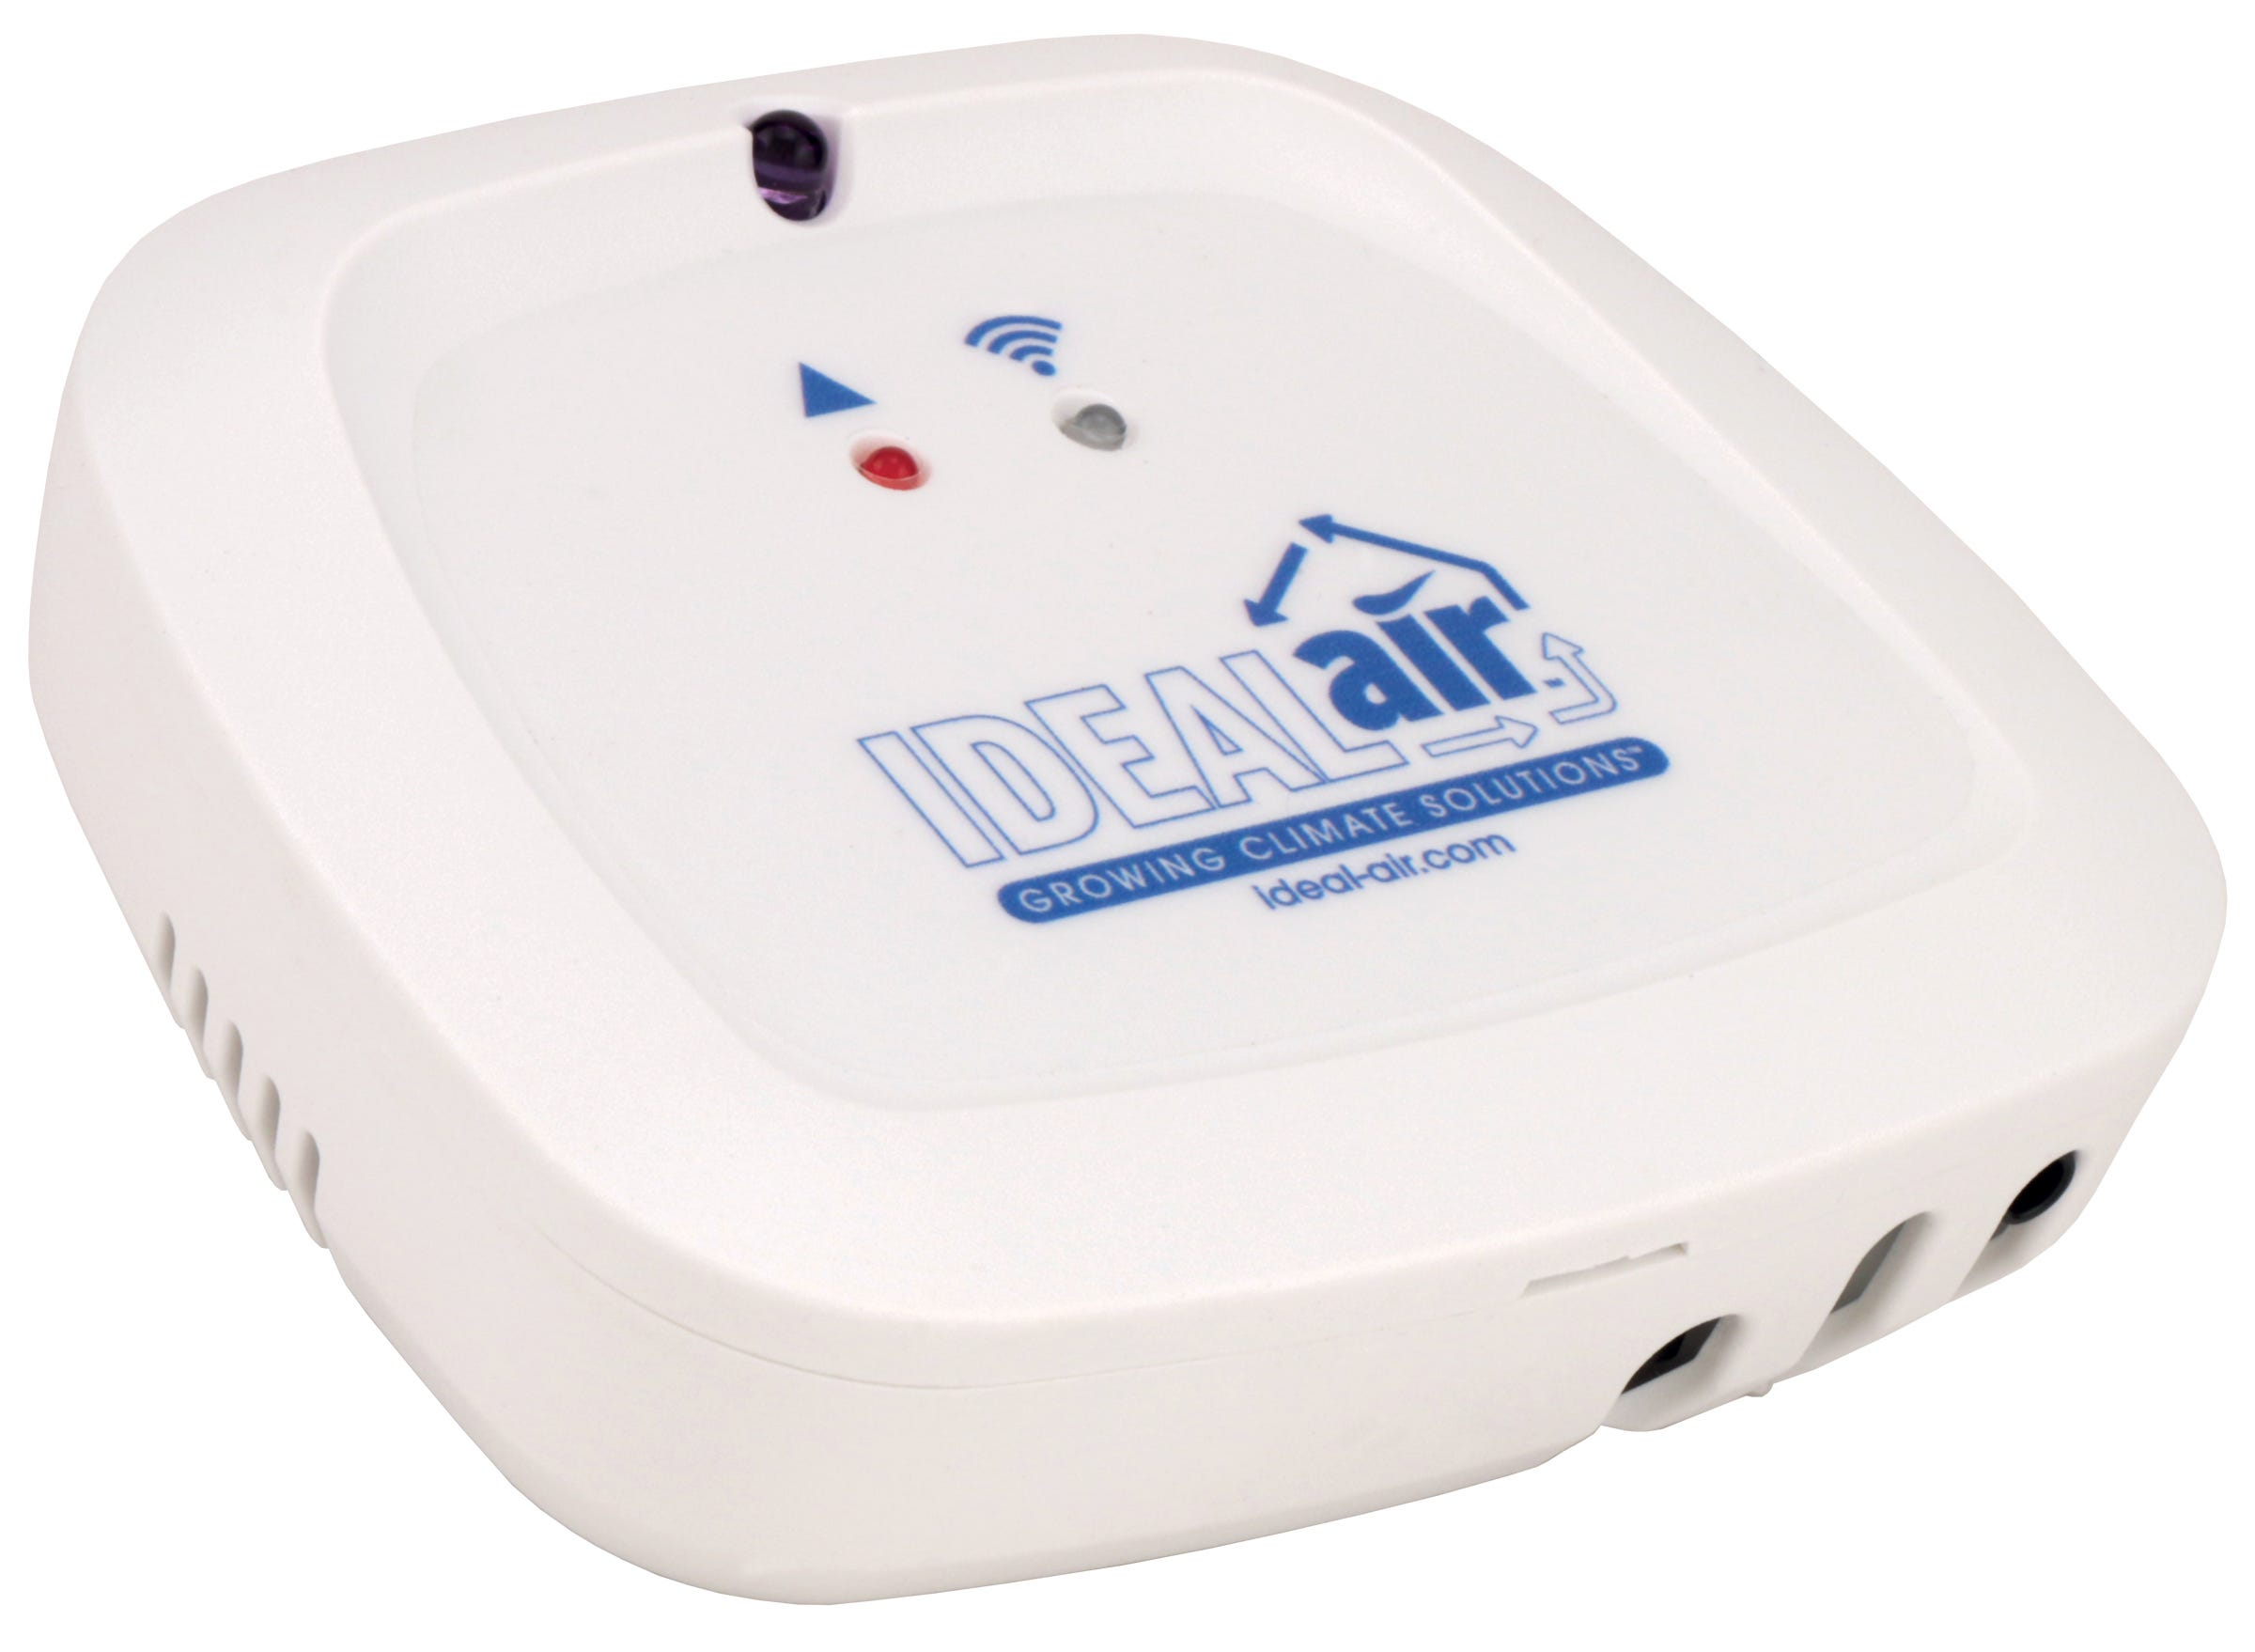 Ideal-Air Wi-Fi Mini Split Controller Ideal-Air Wi-Fi Mini Split Controller The Ideal-Air Wi-Fi Mini Split Controller bridges the gap between the rapidly developing smart phone industry and the residential heating and cooling industry. Once securely connected to your wireless router you will be able to control your air-conditioner & heat-pump through our smart phone app. The Ideal-Air Wi-Fi Mini Split Controller uses patented technology which allows for a secure connection to your local wireless router through your smart phone. Communication to your air-conditioner & heat-pump unit is via three powerful infrared diodes (iR emitters) each with an emitting range of up to 50 feet. The Ideal-Air Wi-Fi Mini Split Controller has an internal temperature sensor which allows for real time readings at your home or office. If you need to turn on your air-conditioner or heat-pump, change its mode, adjust the set temperature, fan speed or even set up the smart timer feature, it's right at your fingertips. Cloud based, the Ideal-Air Wi-Fi Mini Split Controller will always be up to date with the latest software releases. The Wi-Fi Controller will only join 2.4GHz Wi-Fi networks, not 5GHz ones.